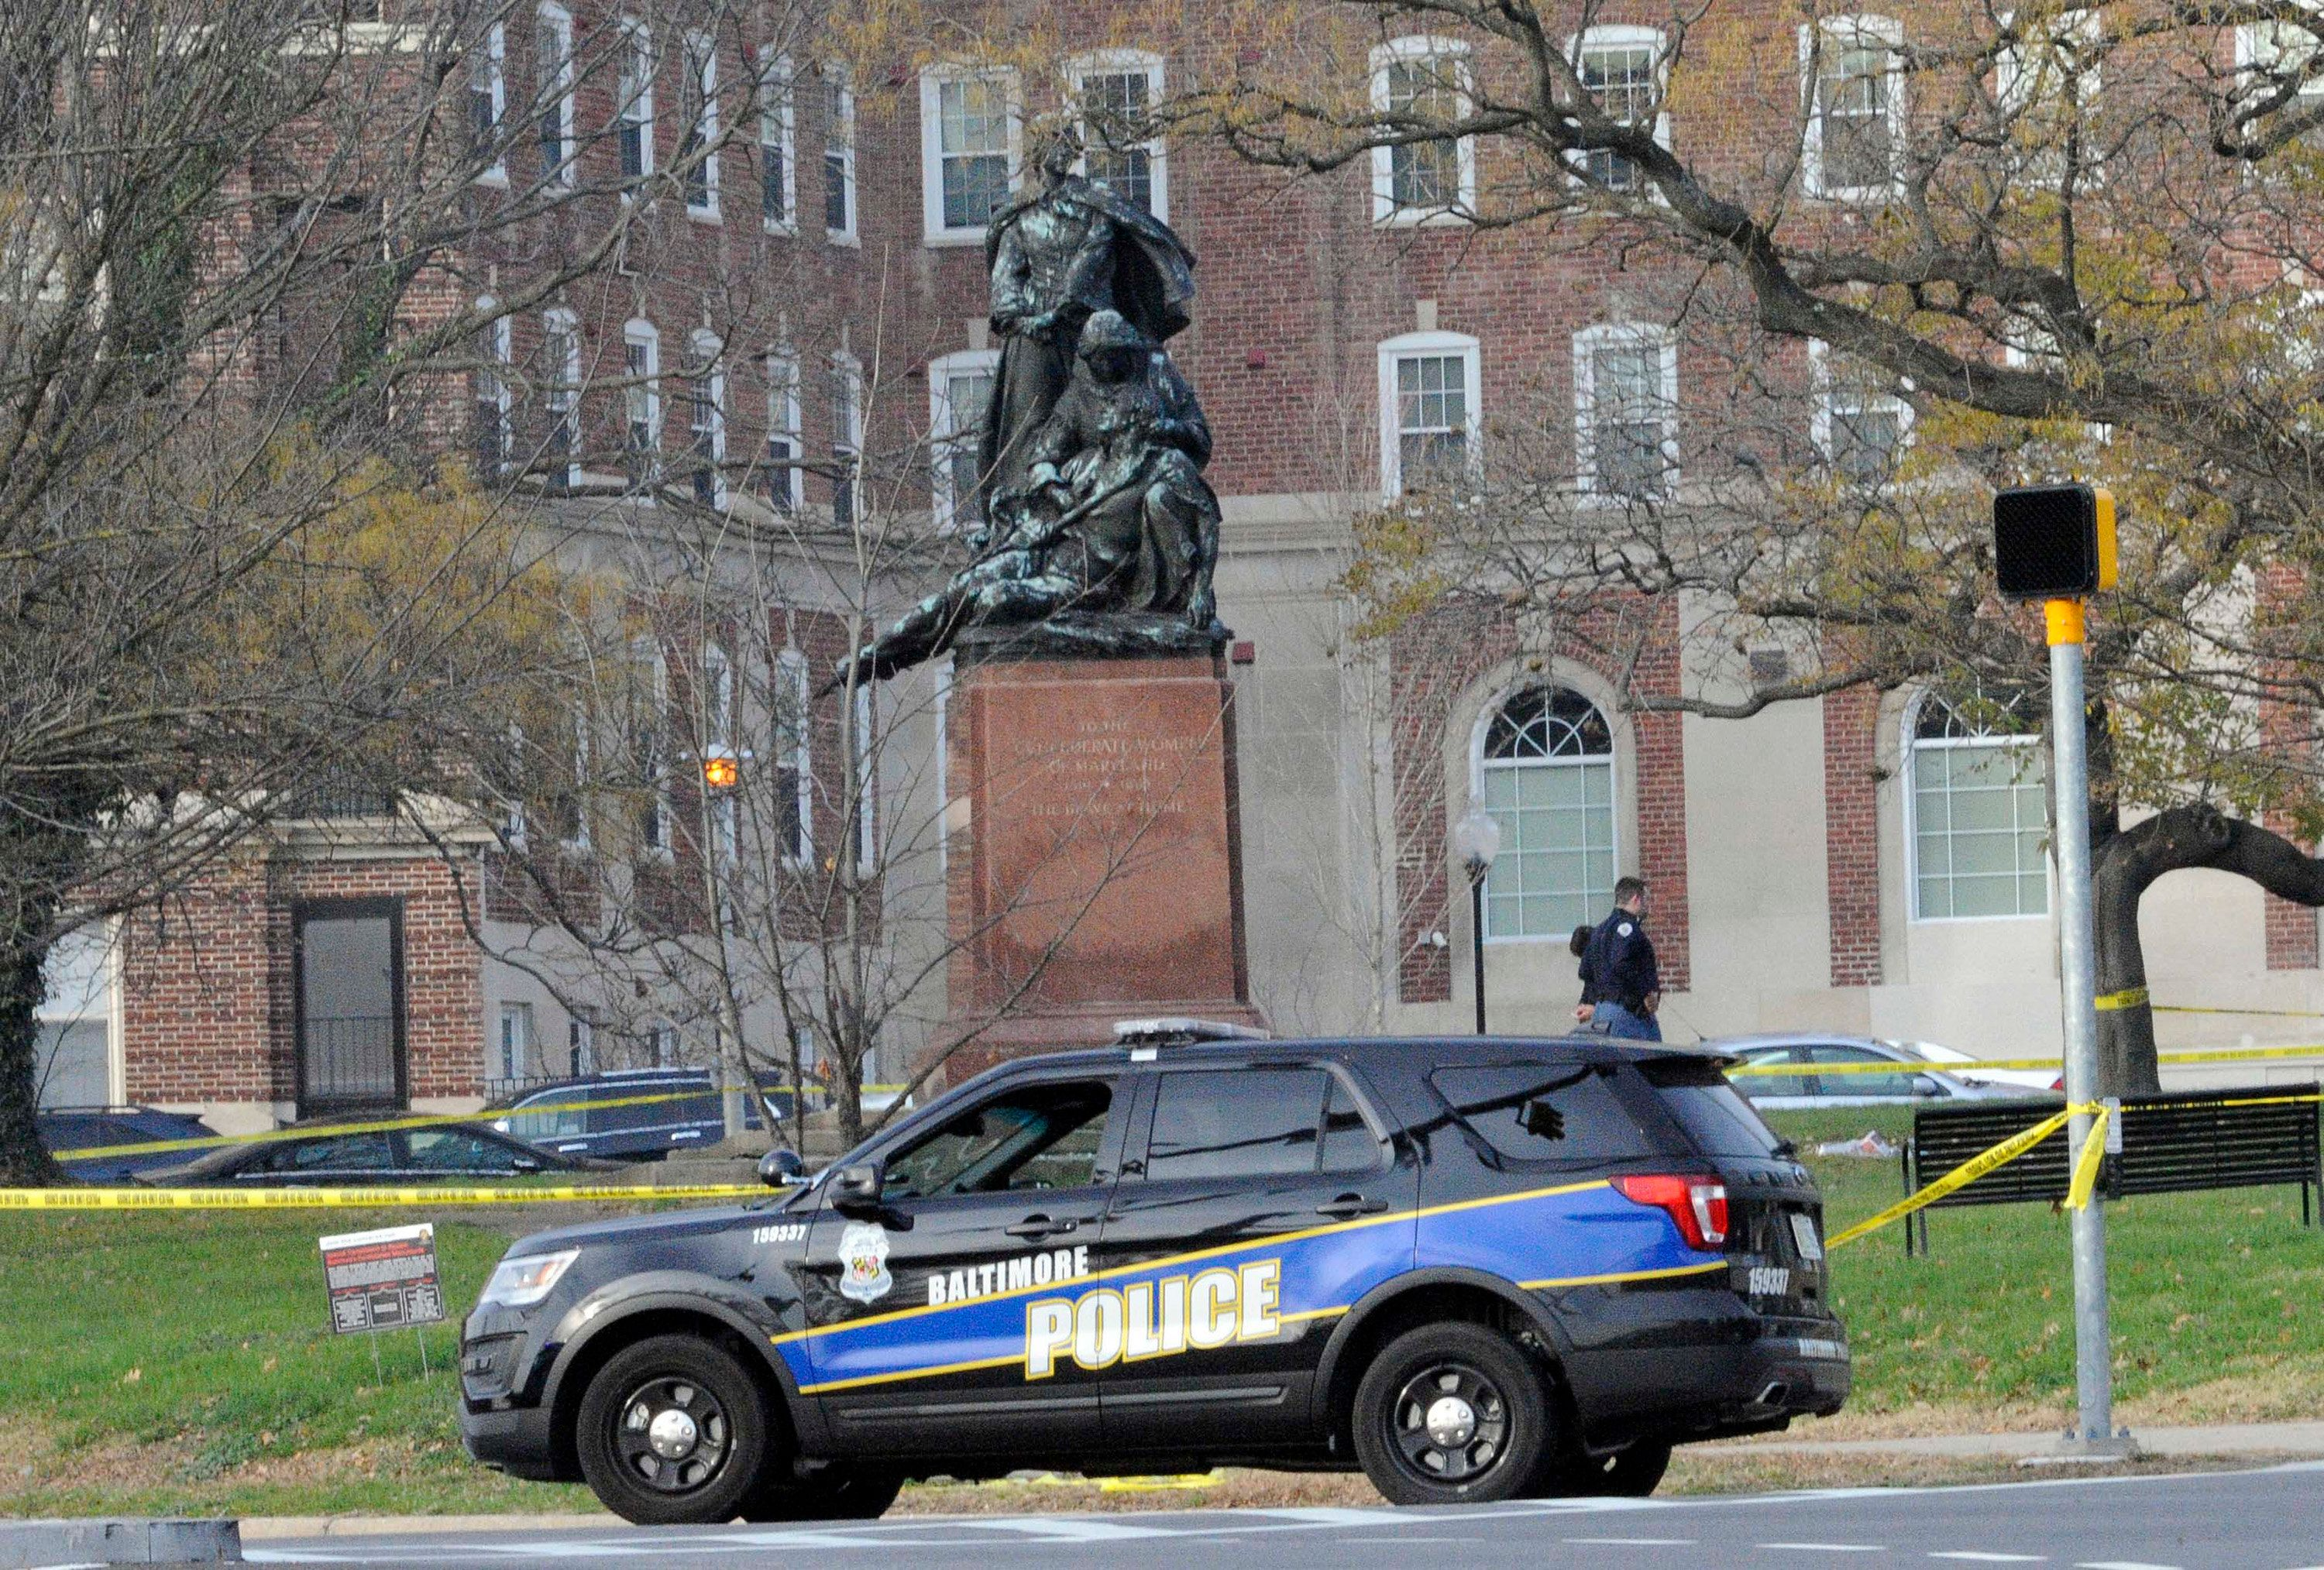 The Baltimore Police Hazard Device Unit responds to two suspicious packages that were left at the Confederate Monument in Baltimore on Saturday, Dec. 12, 2015. Both packages appeared to have newspapers and empty water bottles inside. (Jeffrey F. Bill/Baltimore Sun/TNS via Getty Images)